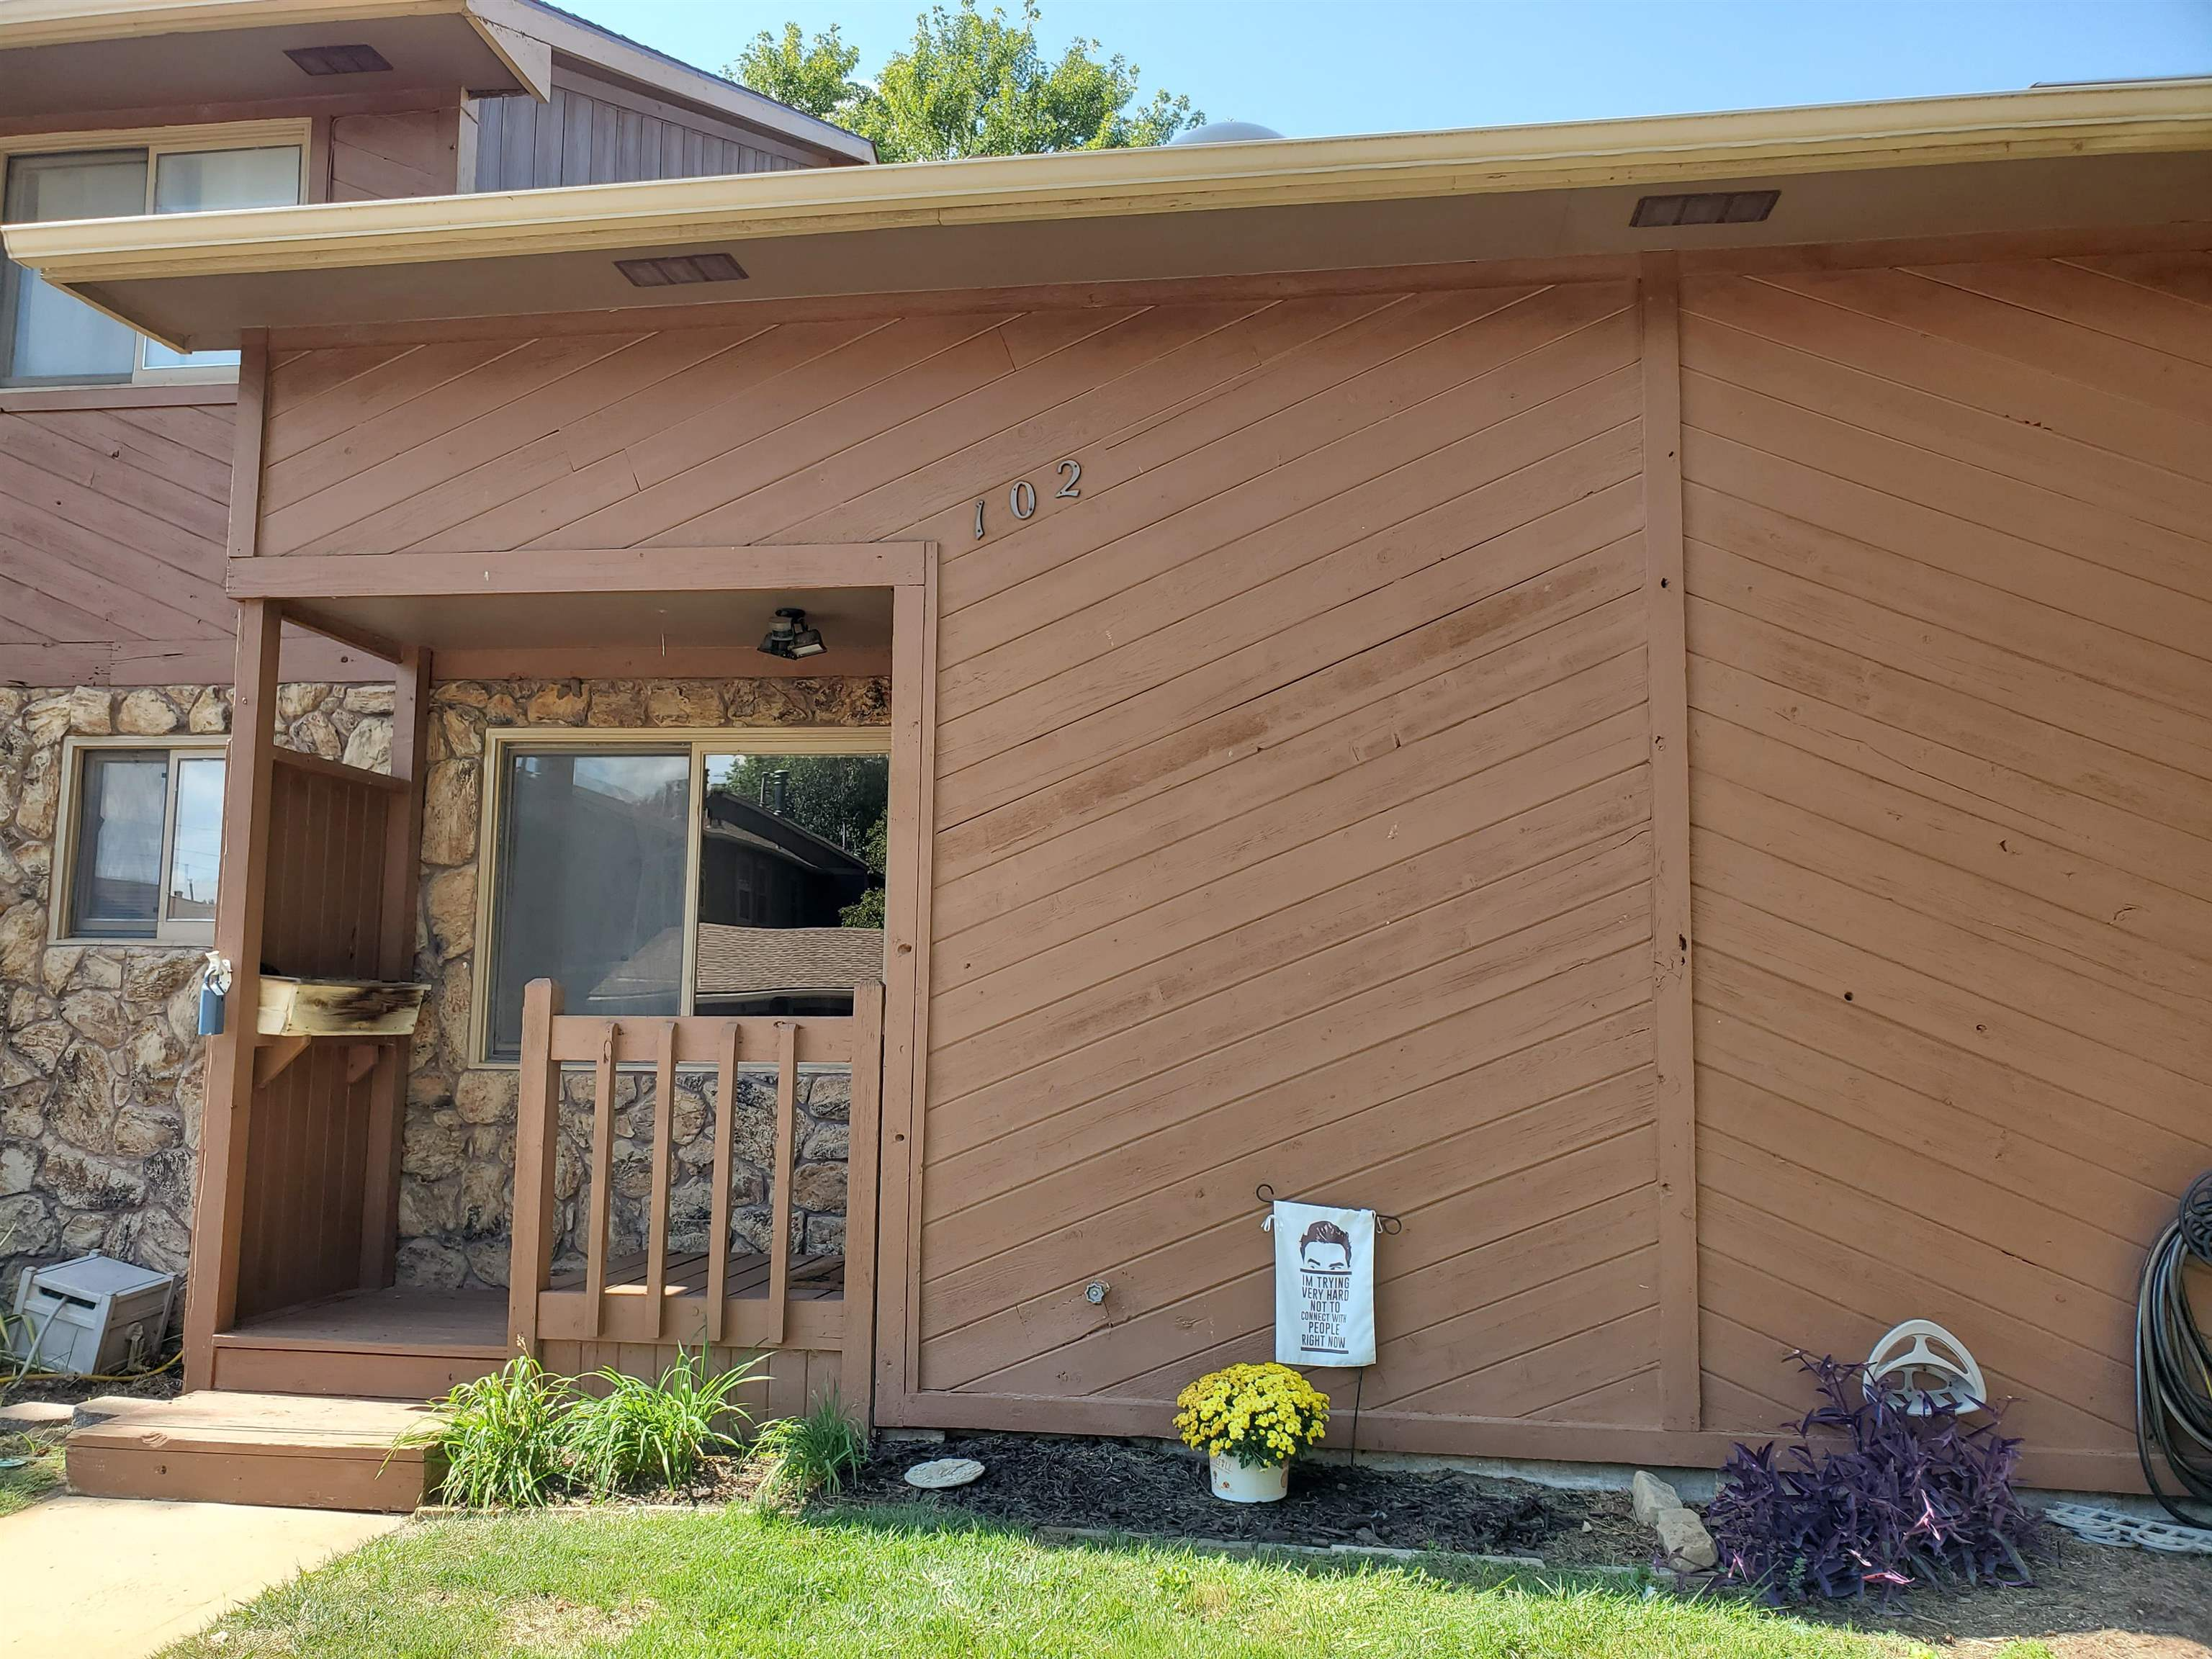 Welcome home to this well-maintained condo conveniently located in West Wichita. As you enter, you'l